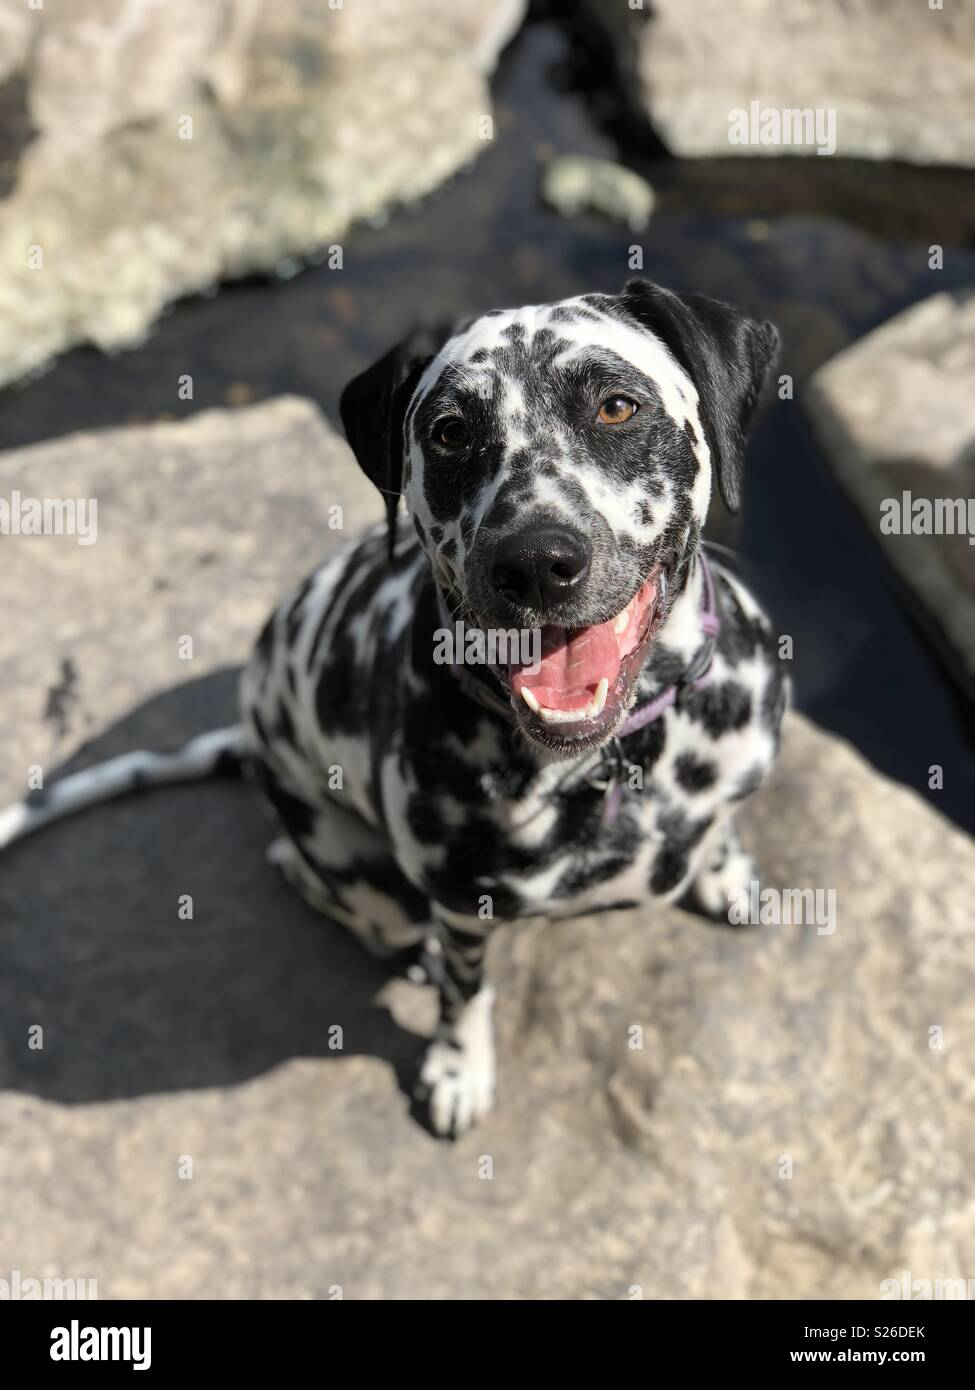 Dalmatian puppy sitting on a rock - Stock Image